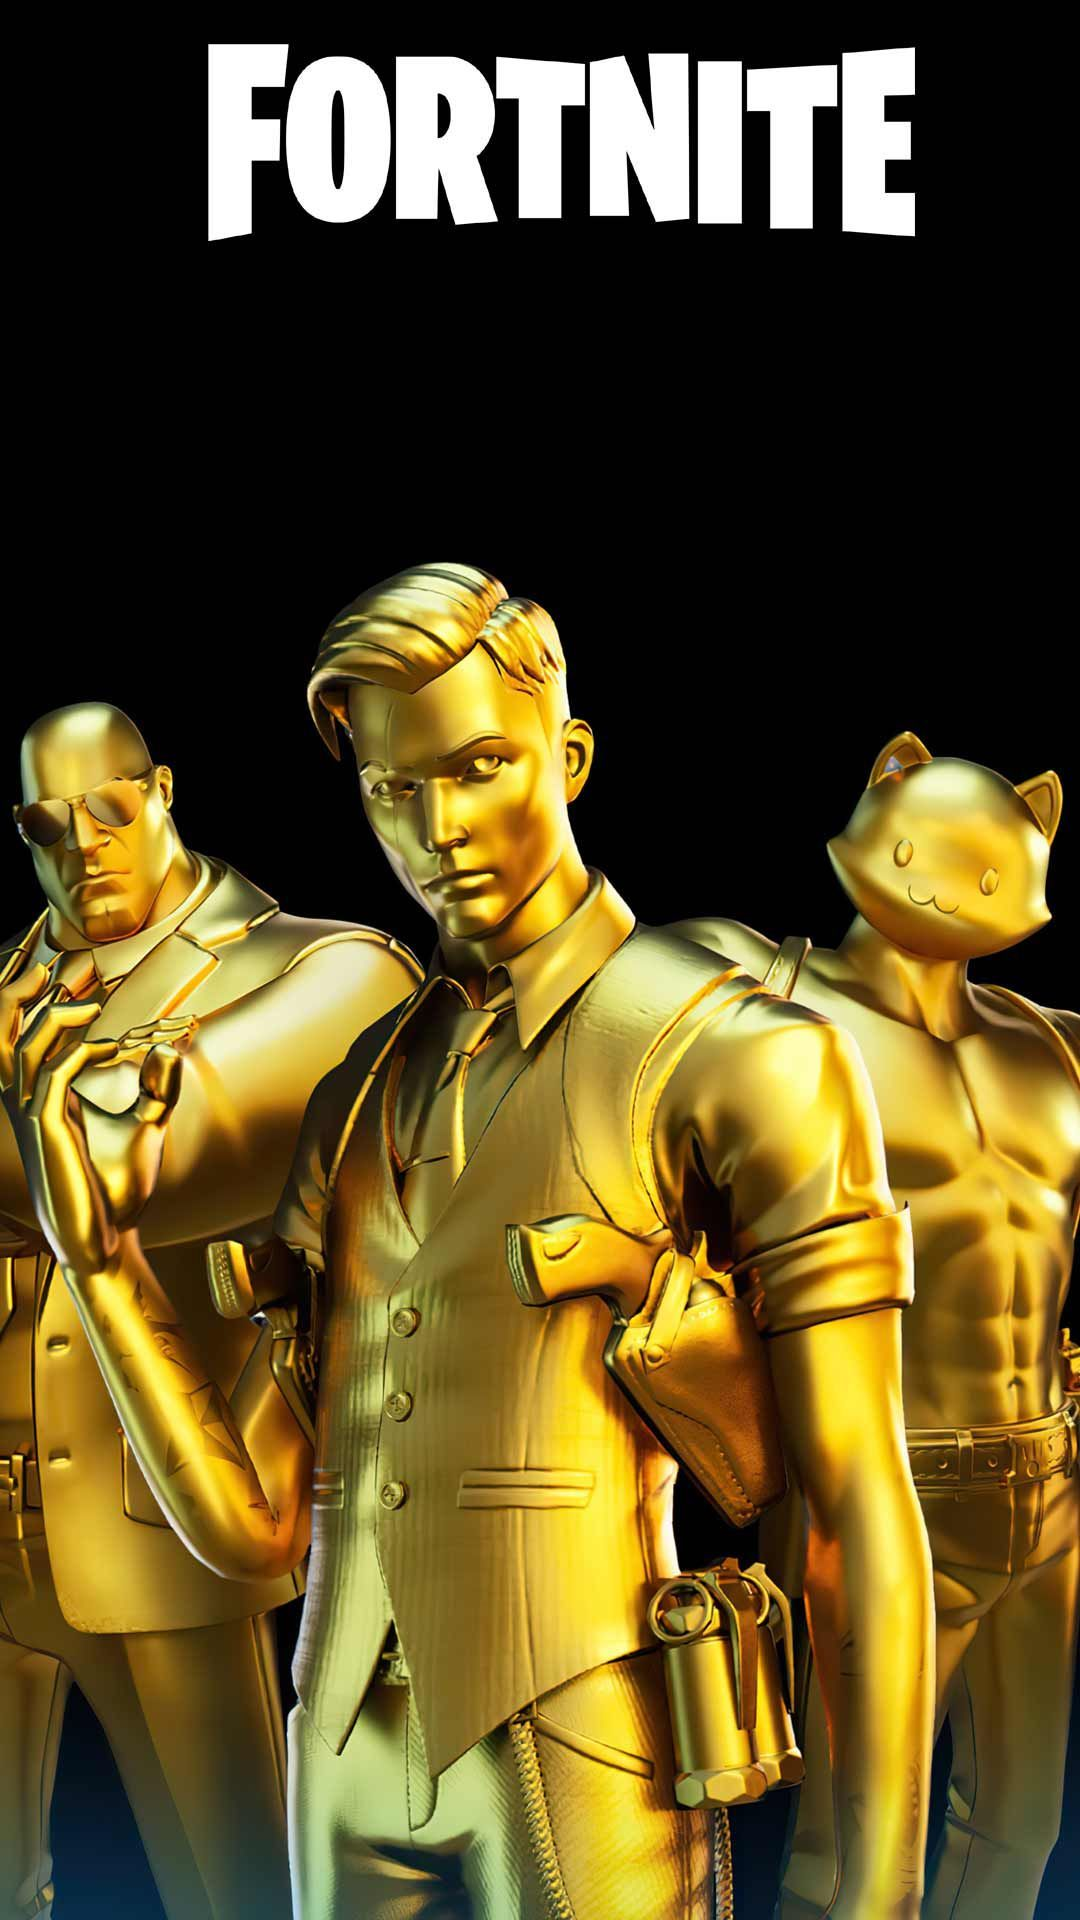 Midas Gold Fortnite Skin Phone Wallpaper Download Hd Backgrounds For Iphone Android Lock Screen In 2020 Android Phone Wallpaper Phone Wallpaper Skin Images